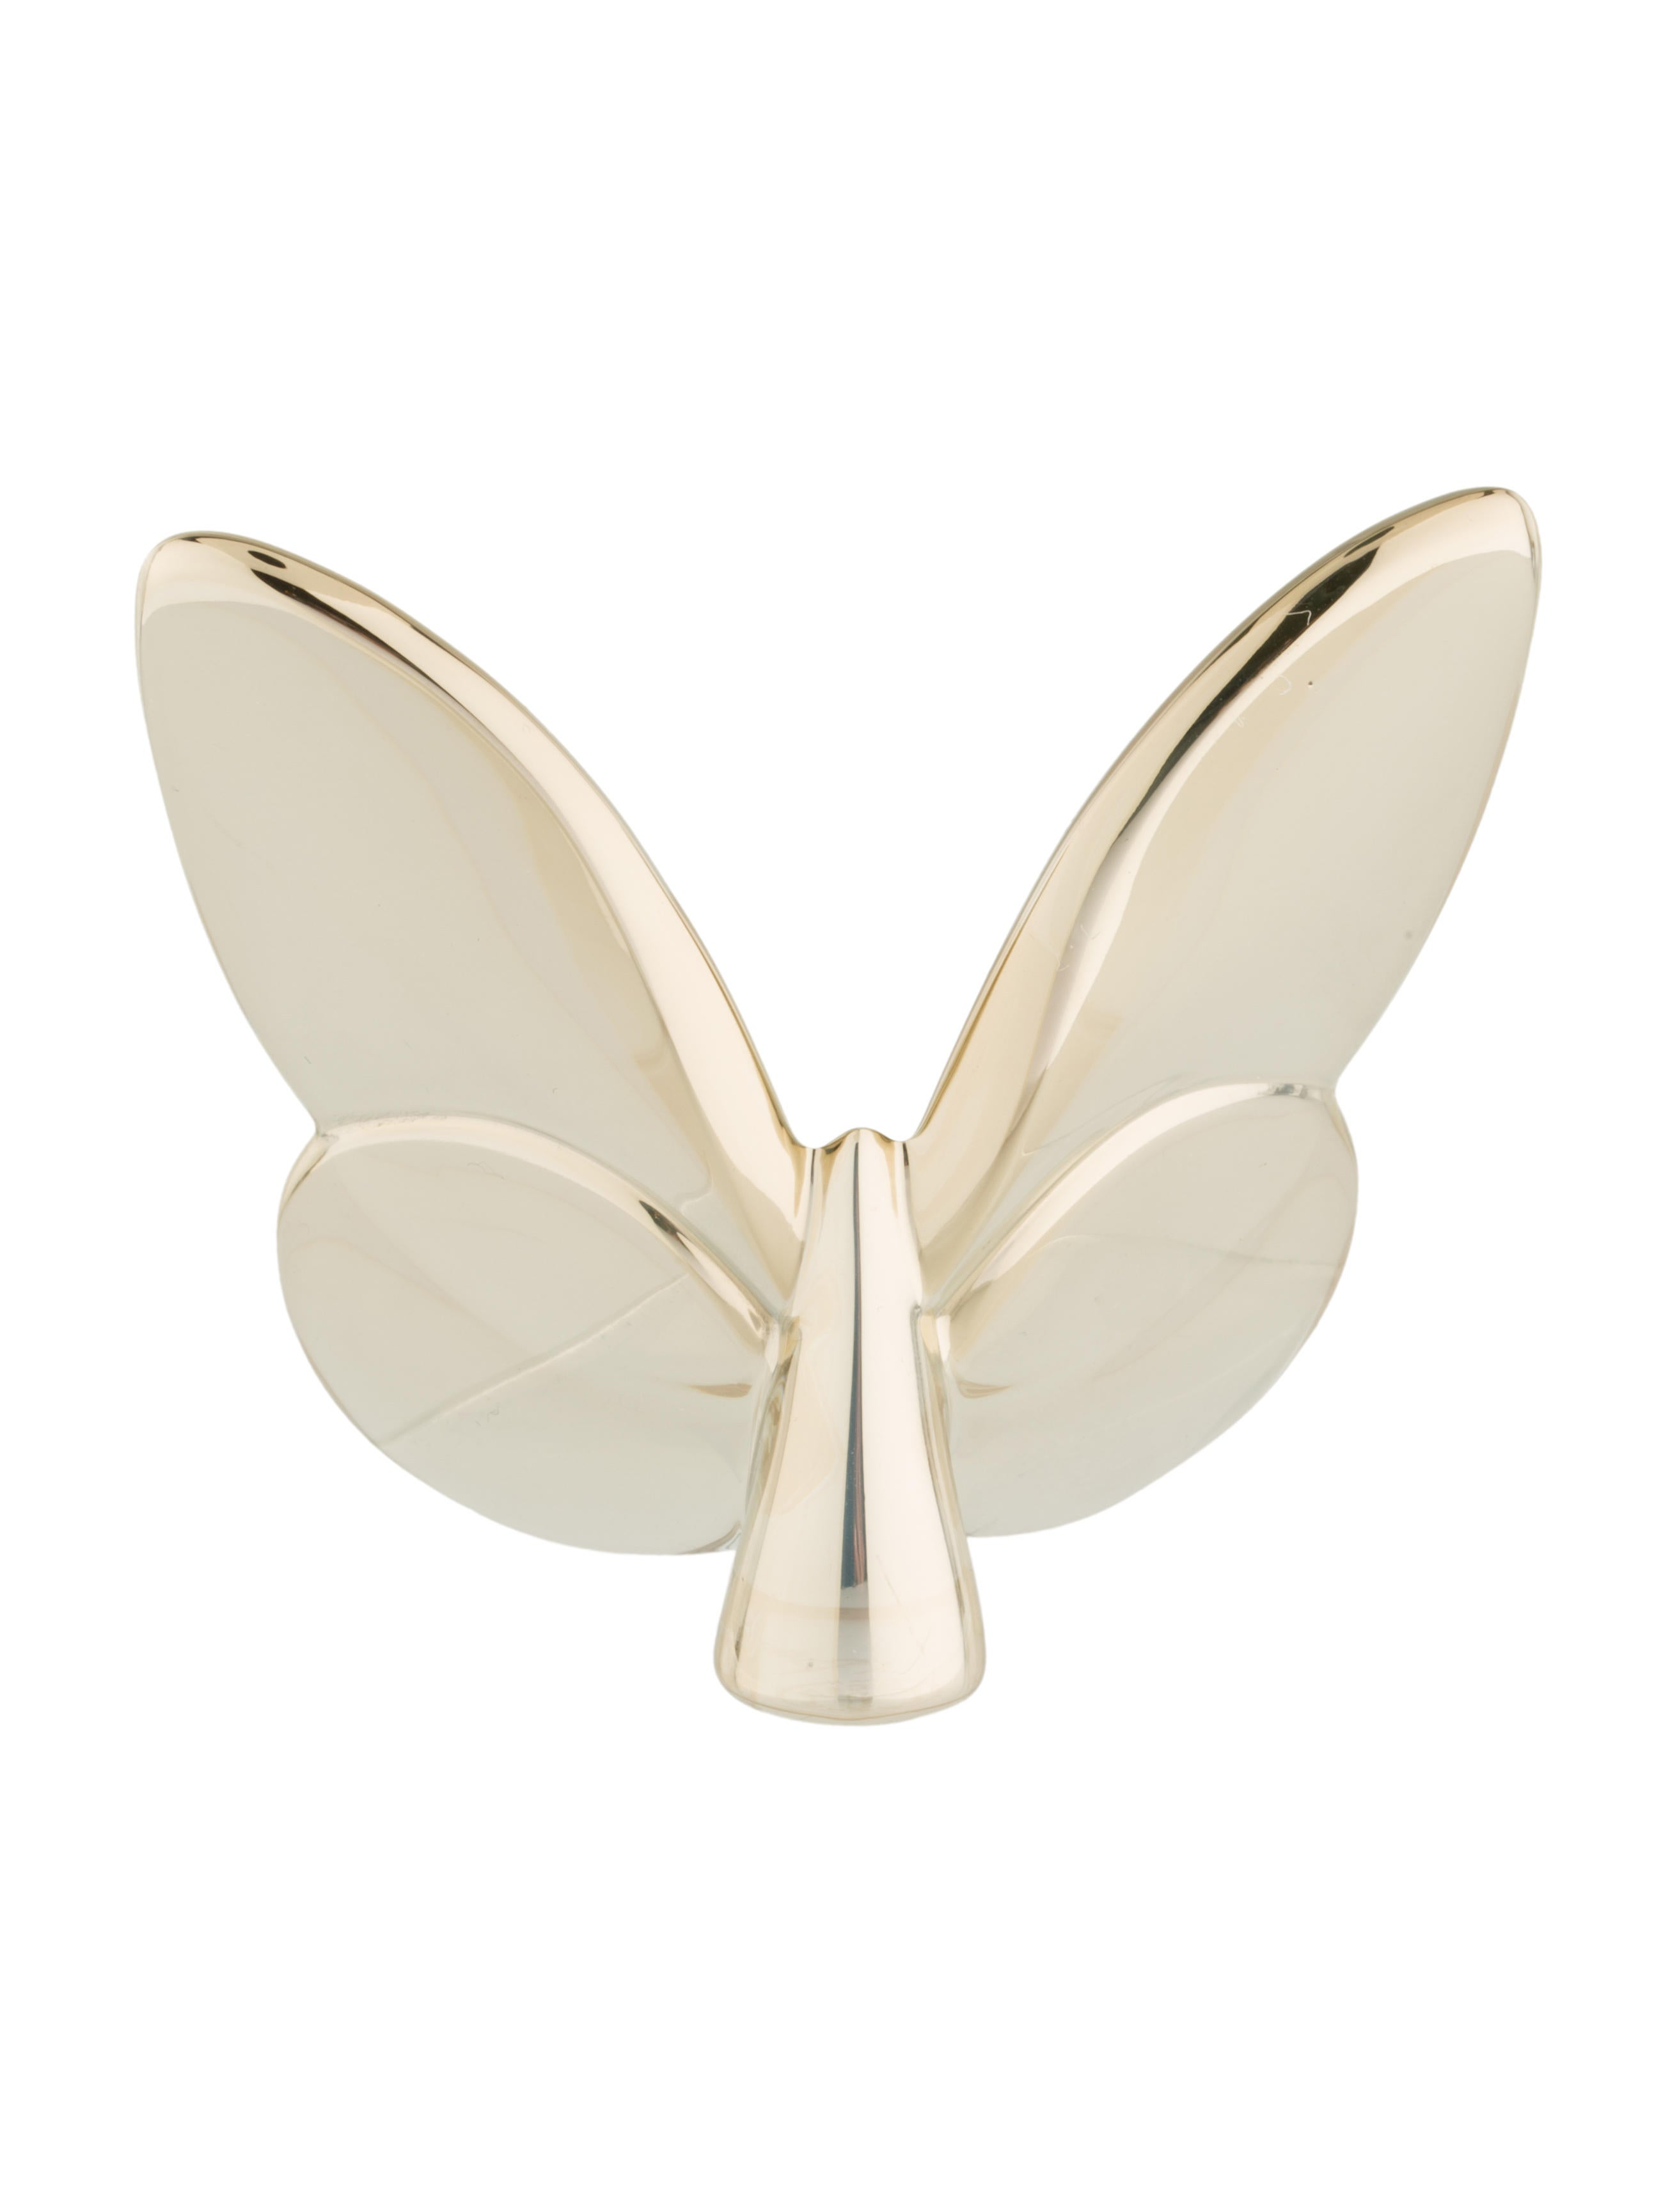 Baccarat lucky gold papillon decor and accessories bcc23413 the realreal - Gold home decor accessories paint ...